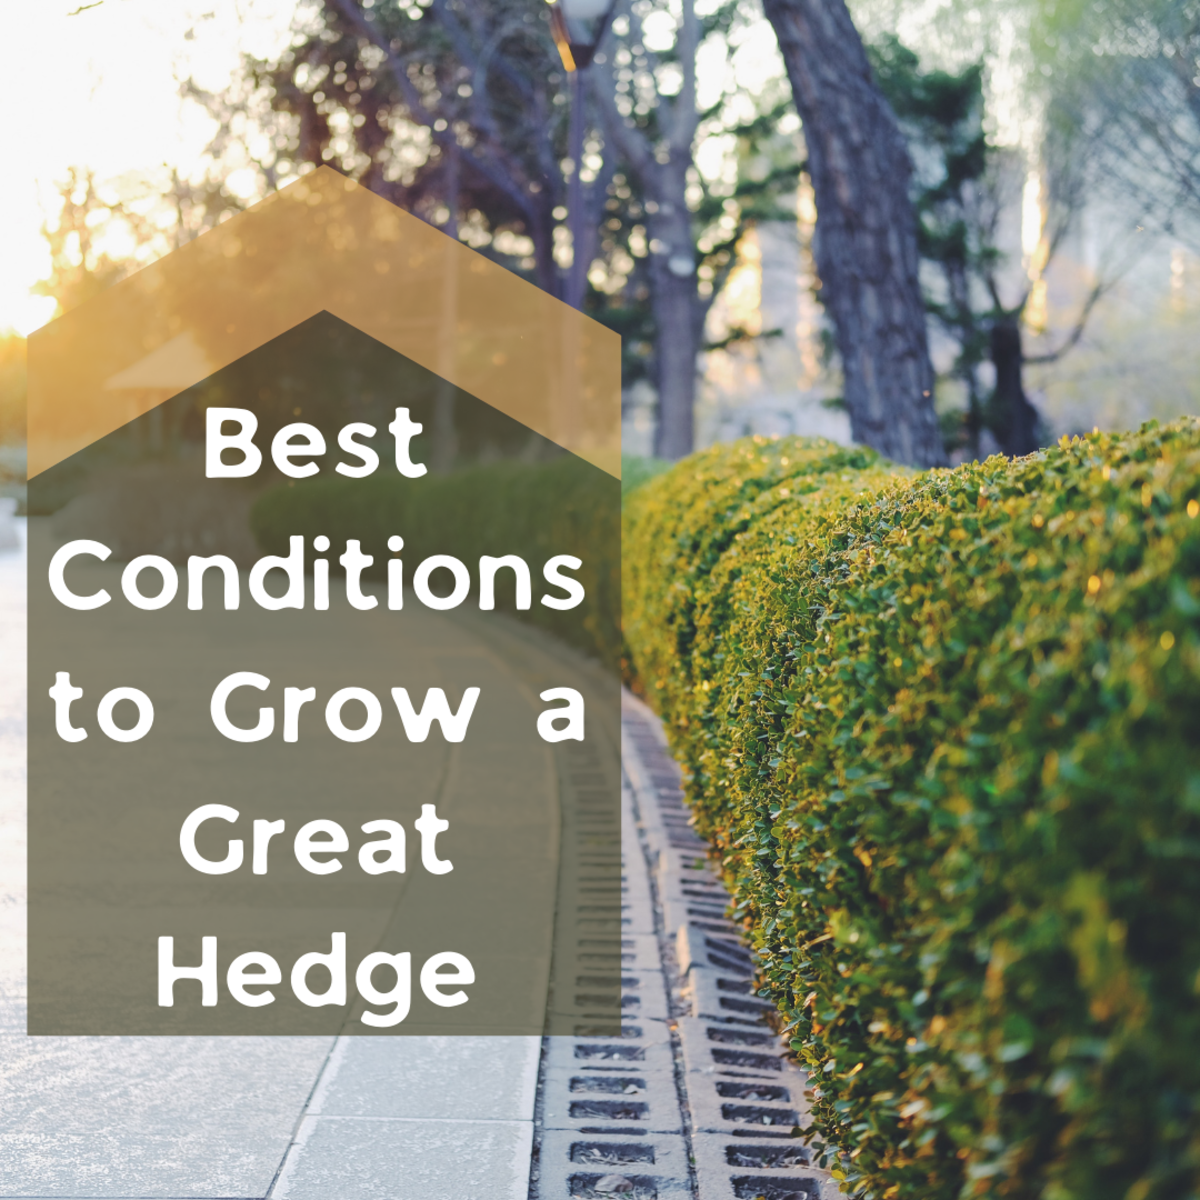 This article provides details on how to grow a flourishing hedge